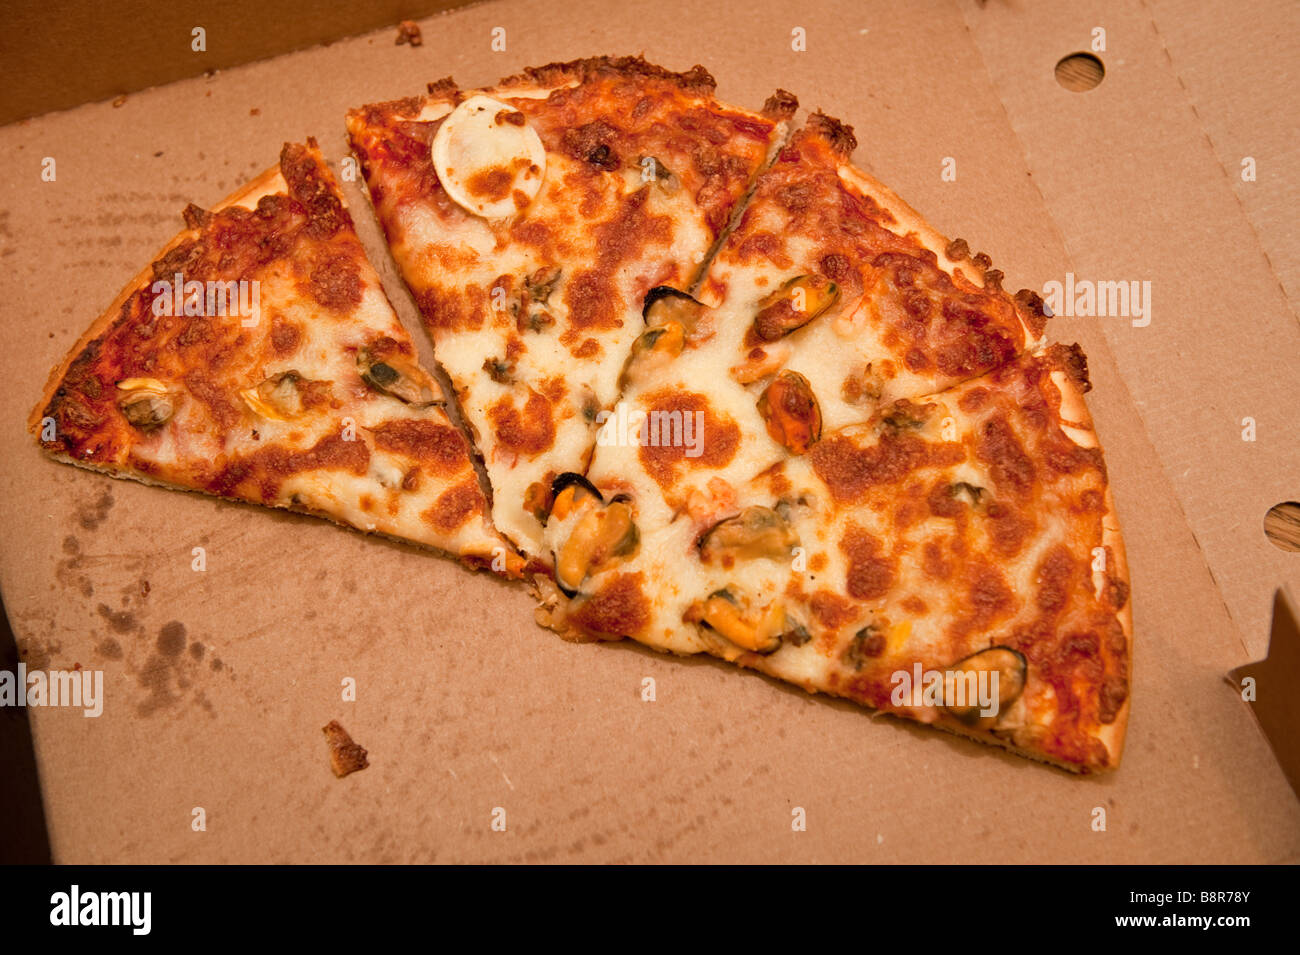 A Half eaten convenience fast food takeaway pizza in a box UK - Stock Image